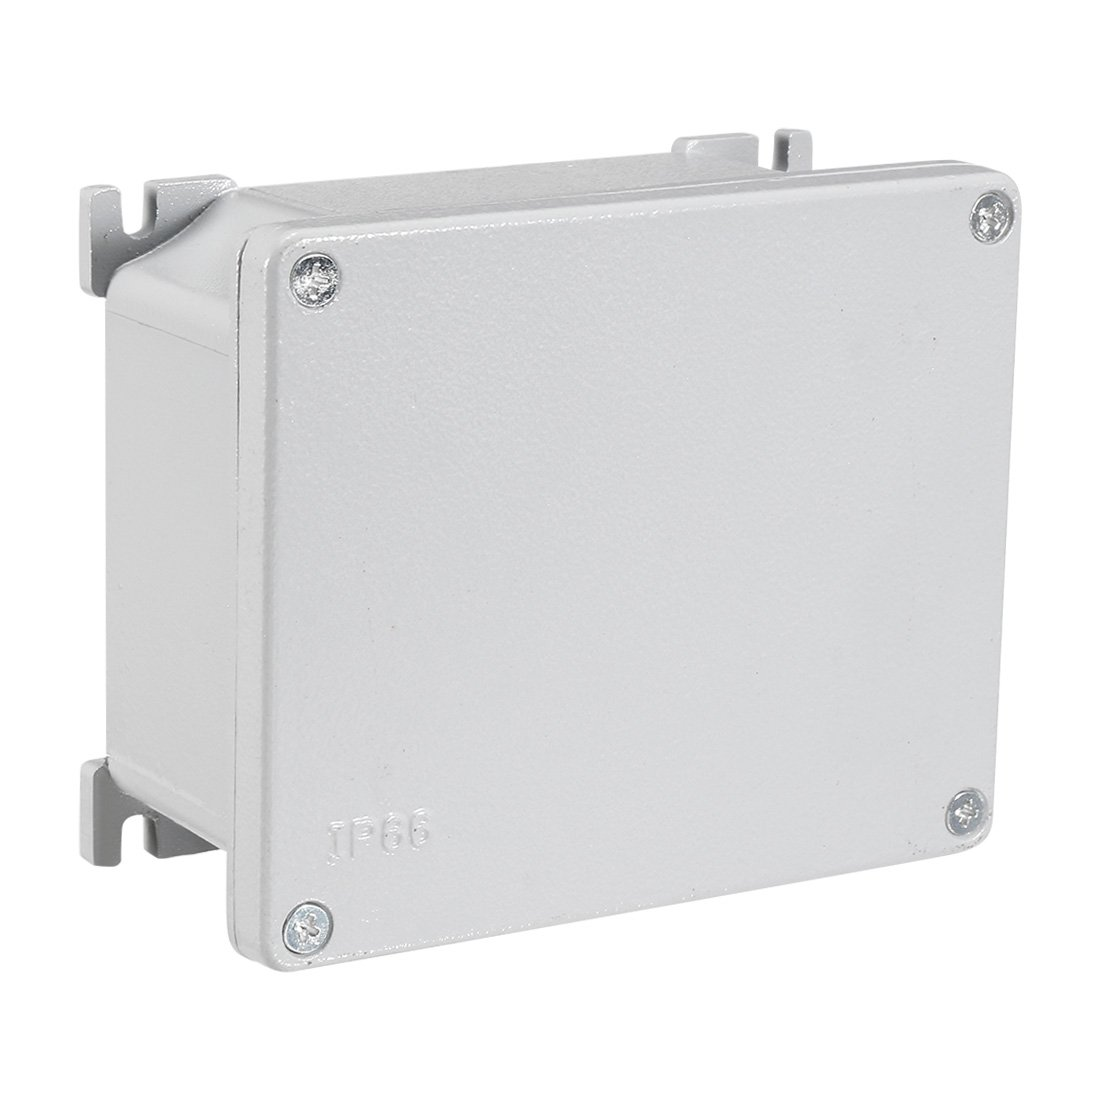 uxcell 5.5''x4.3''x2.3''(140mmx110mmx60mm) Aluminum Junction Boxes Electrical Project Metal Enclosure Waterproof IP65, Abrasion Resistant, Good Heat Dissipation for Outdoor